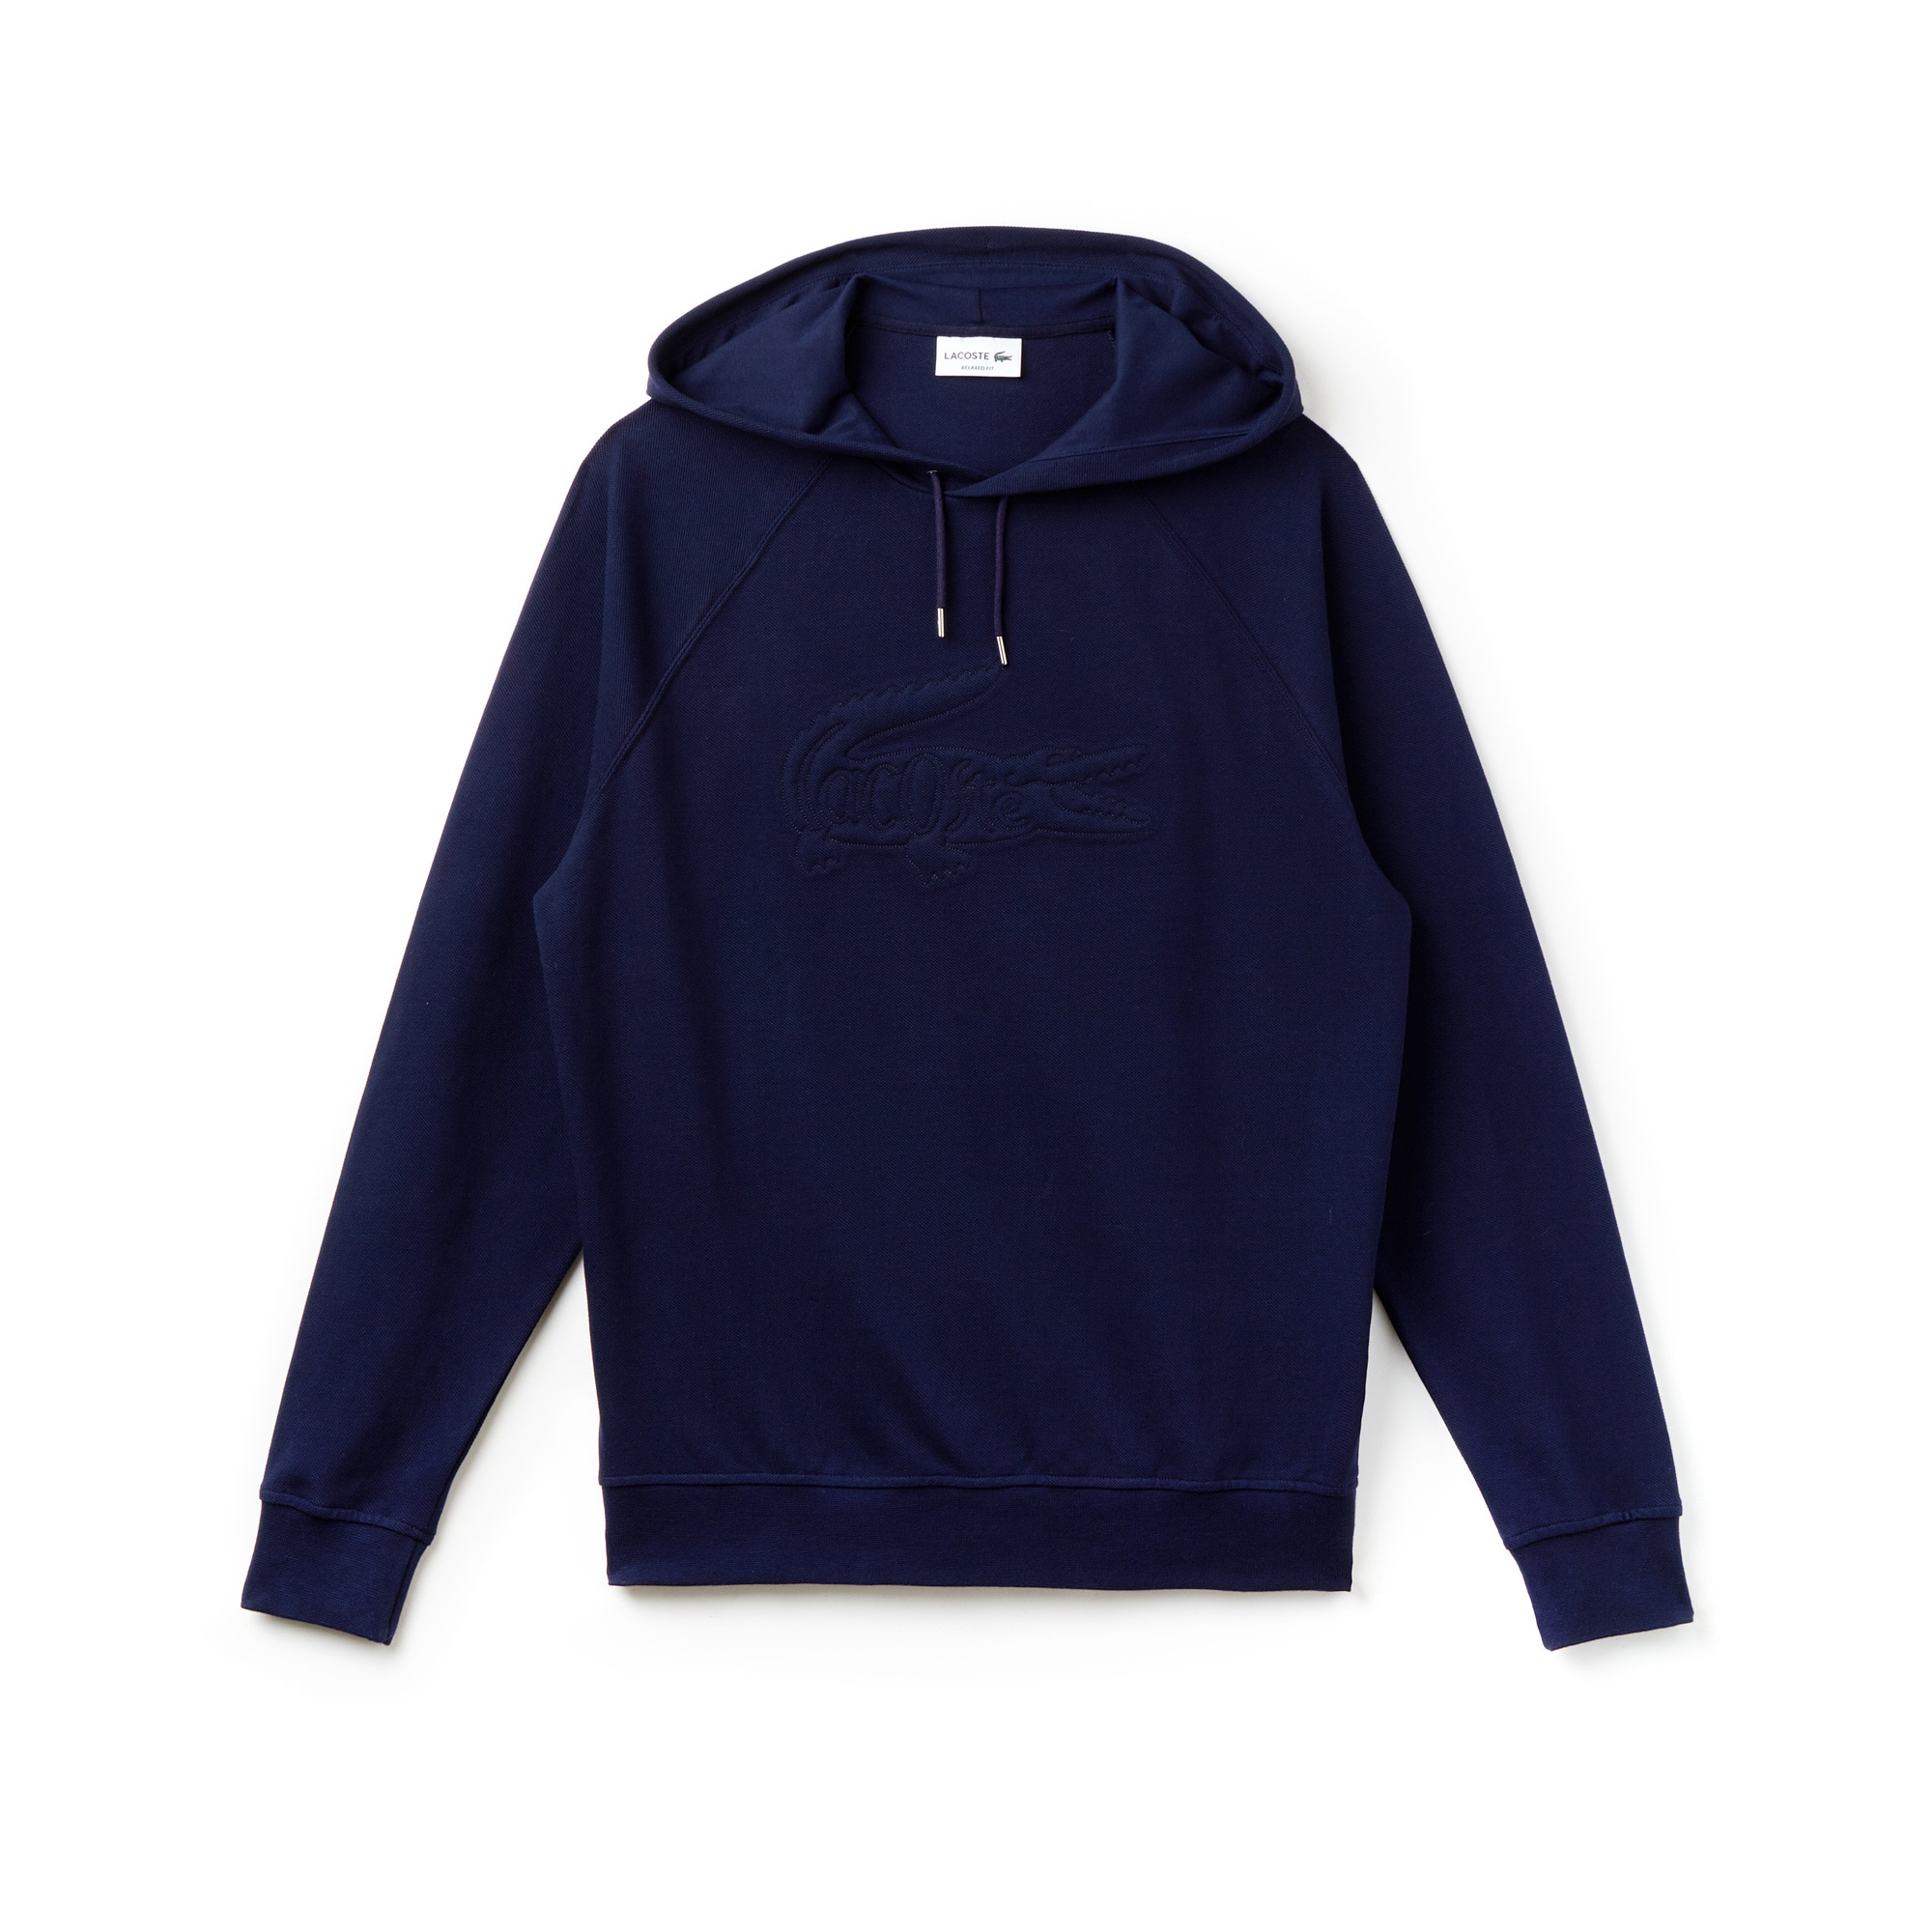 Men's Oversized Embroidered Hooded Piqué Sweatshirt